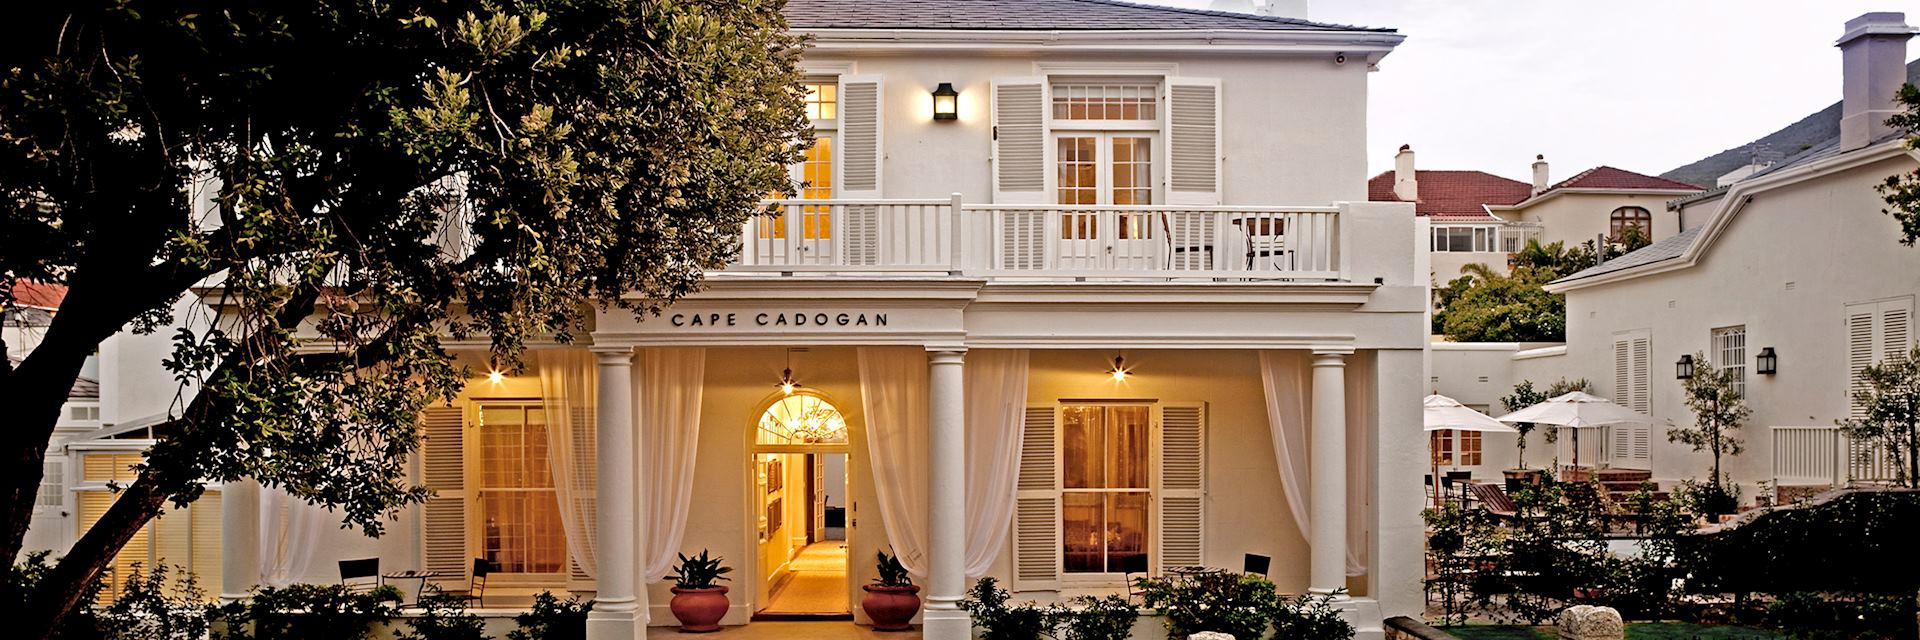 The Cape Cadogan, Cape Town, South Africa